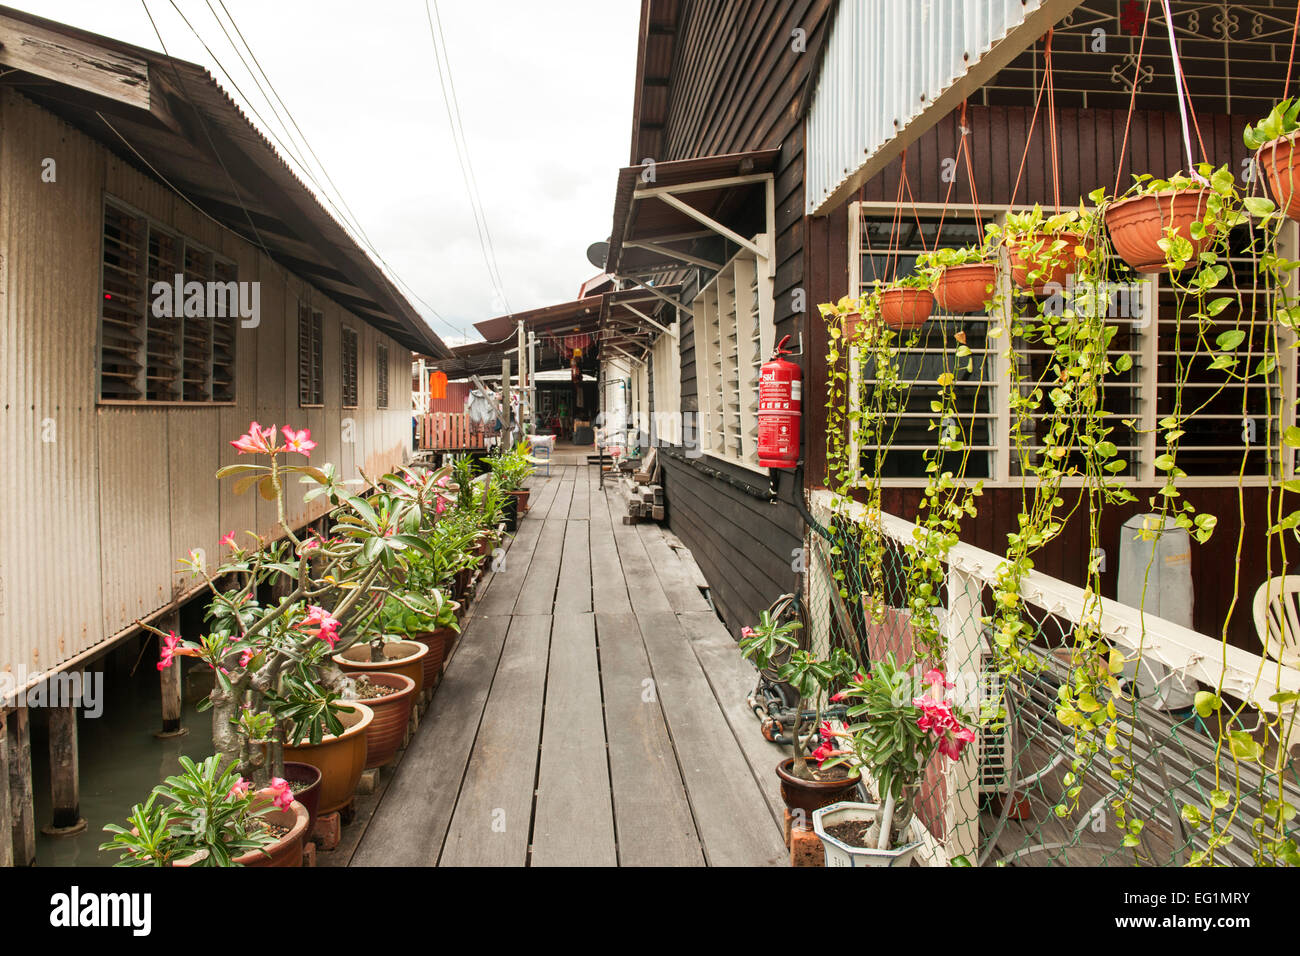 Chew Jetty (aka Seh Chew Keo), a historic waterfront settlement in George Town, Penang, Malaysia. - Stock Image